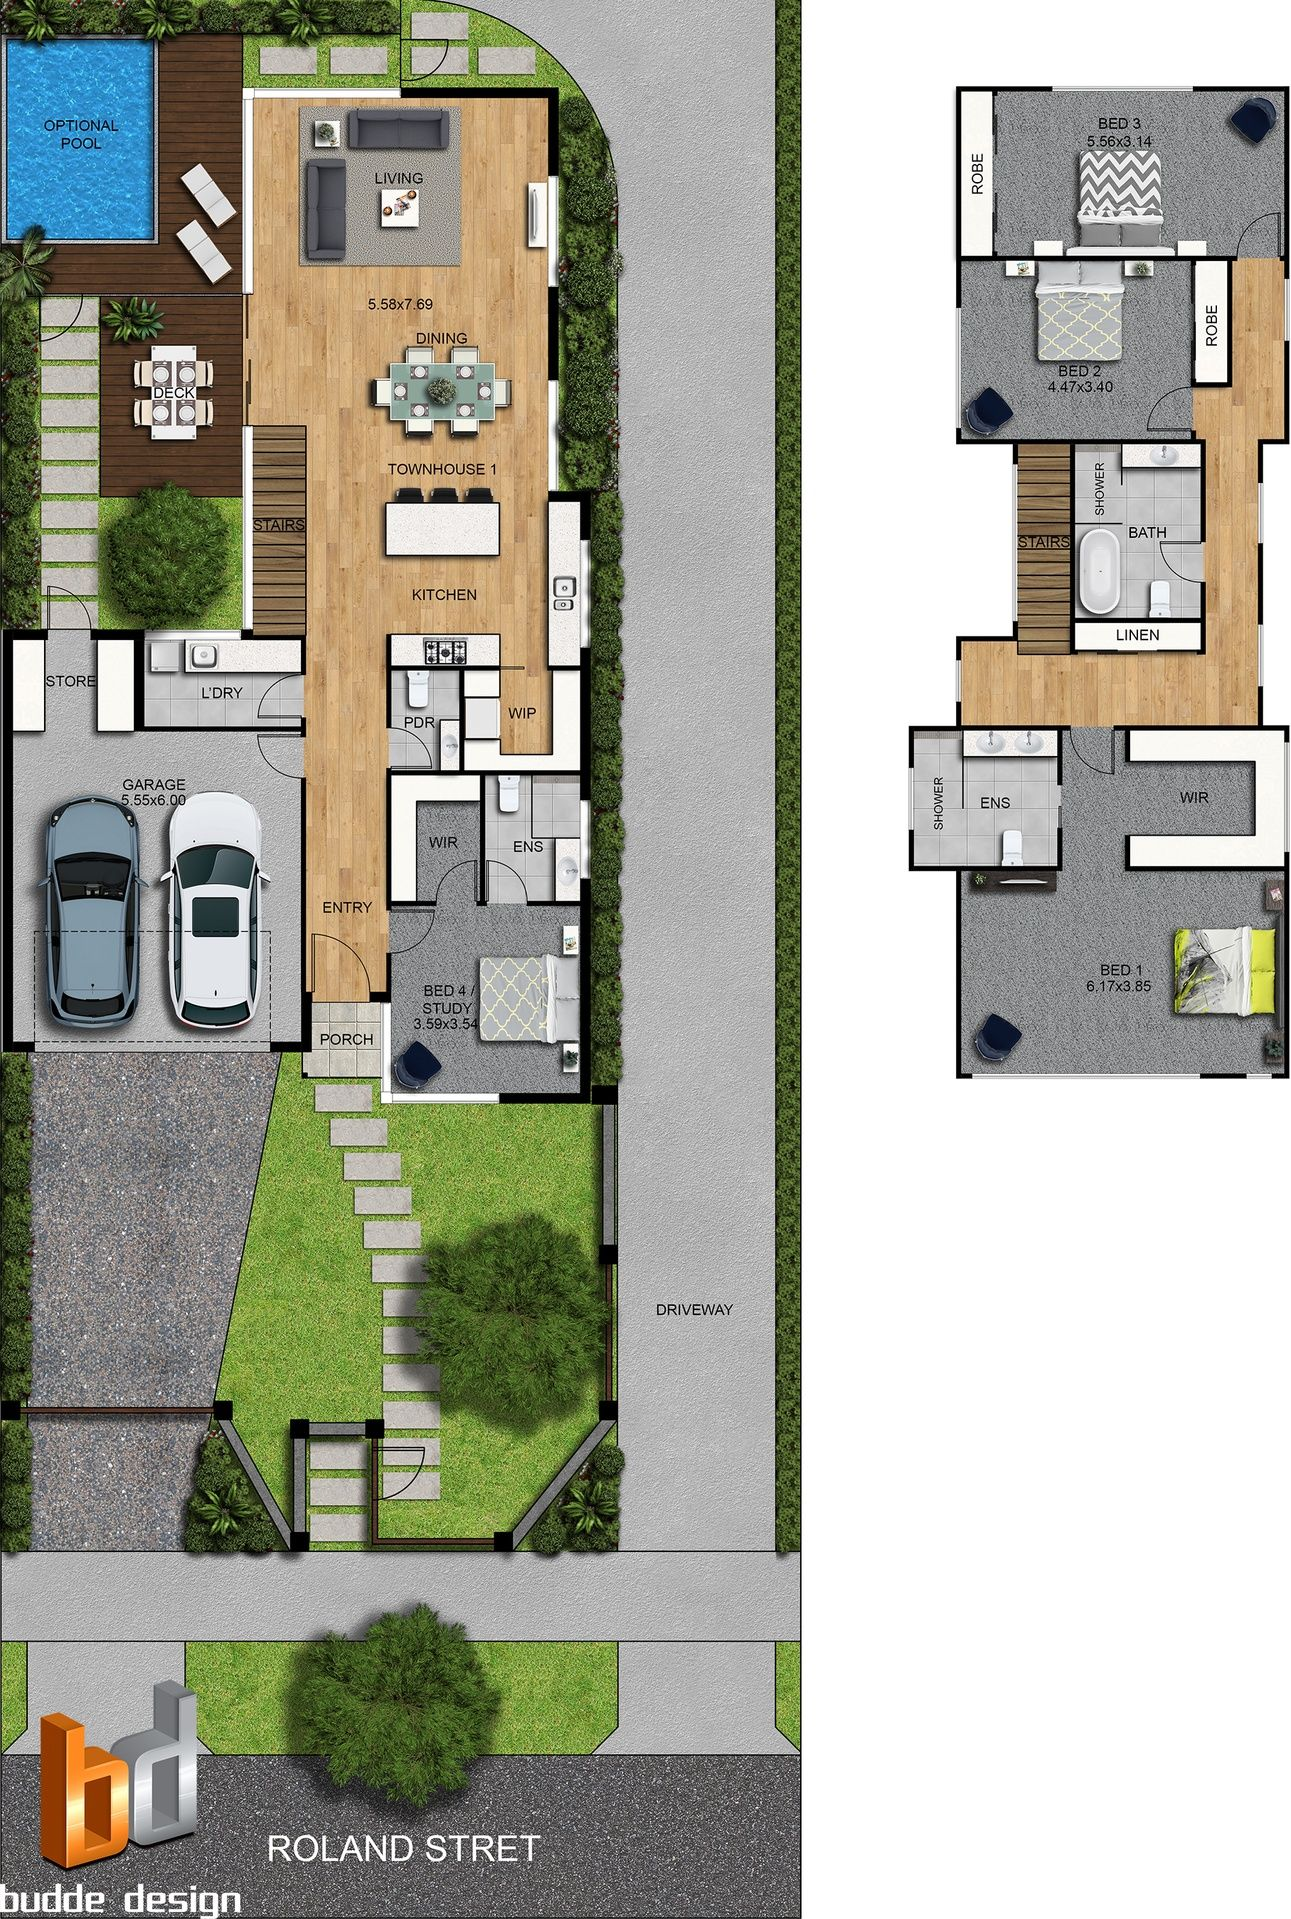 2d Colour Floor Plan And Site Plan 3 Bedroom 2 Level Townhouse Strathmore Victoria Top View Bedroom Model House Plan Modern House Plans House Layouts